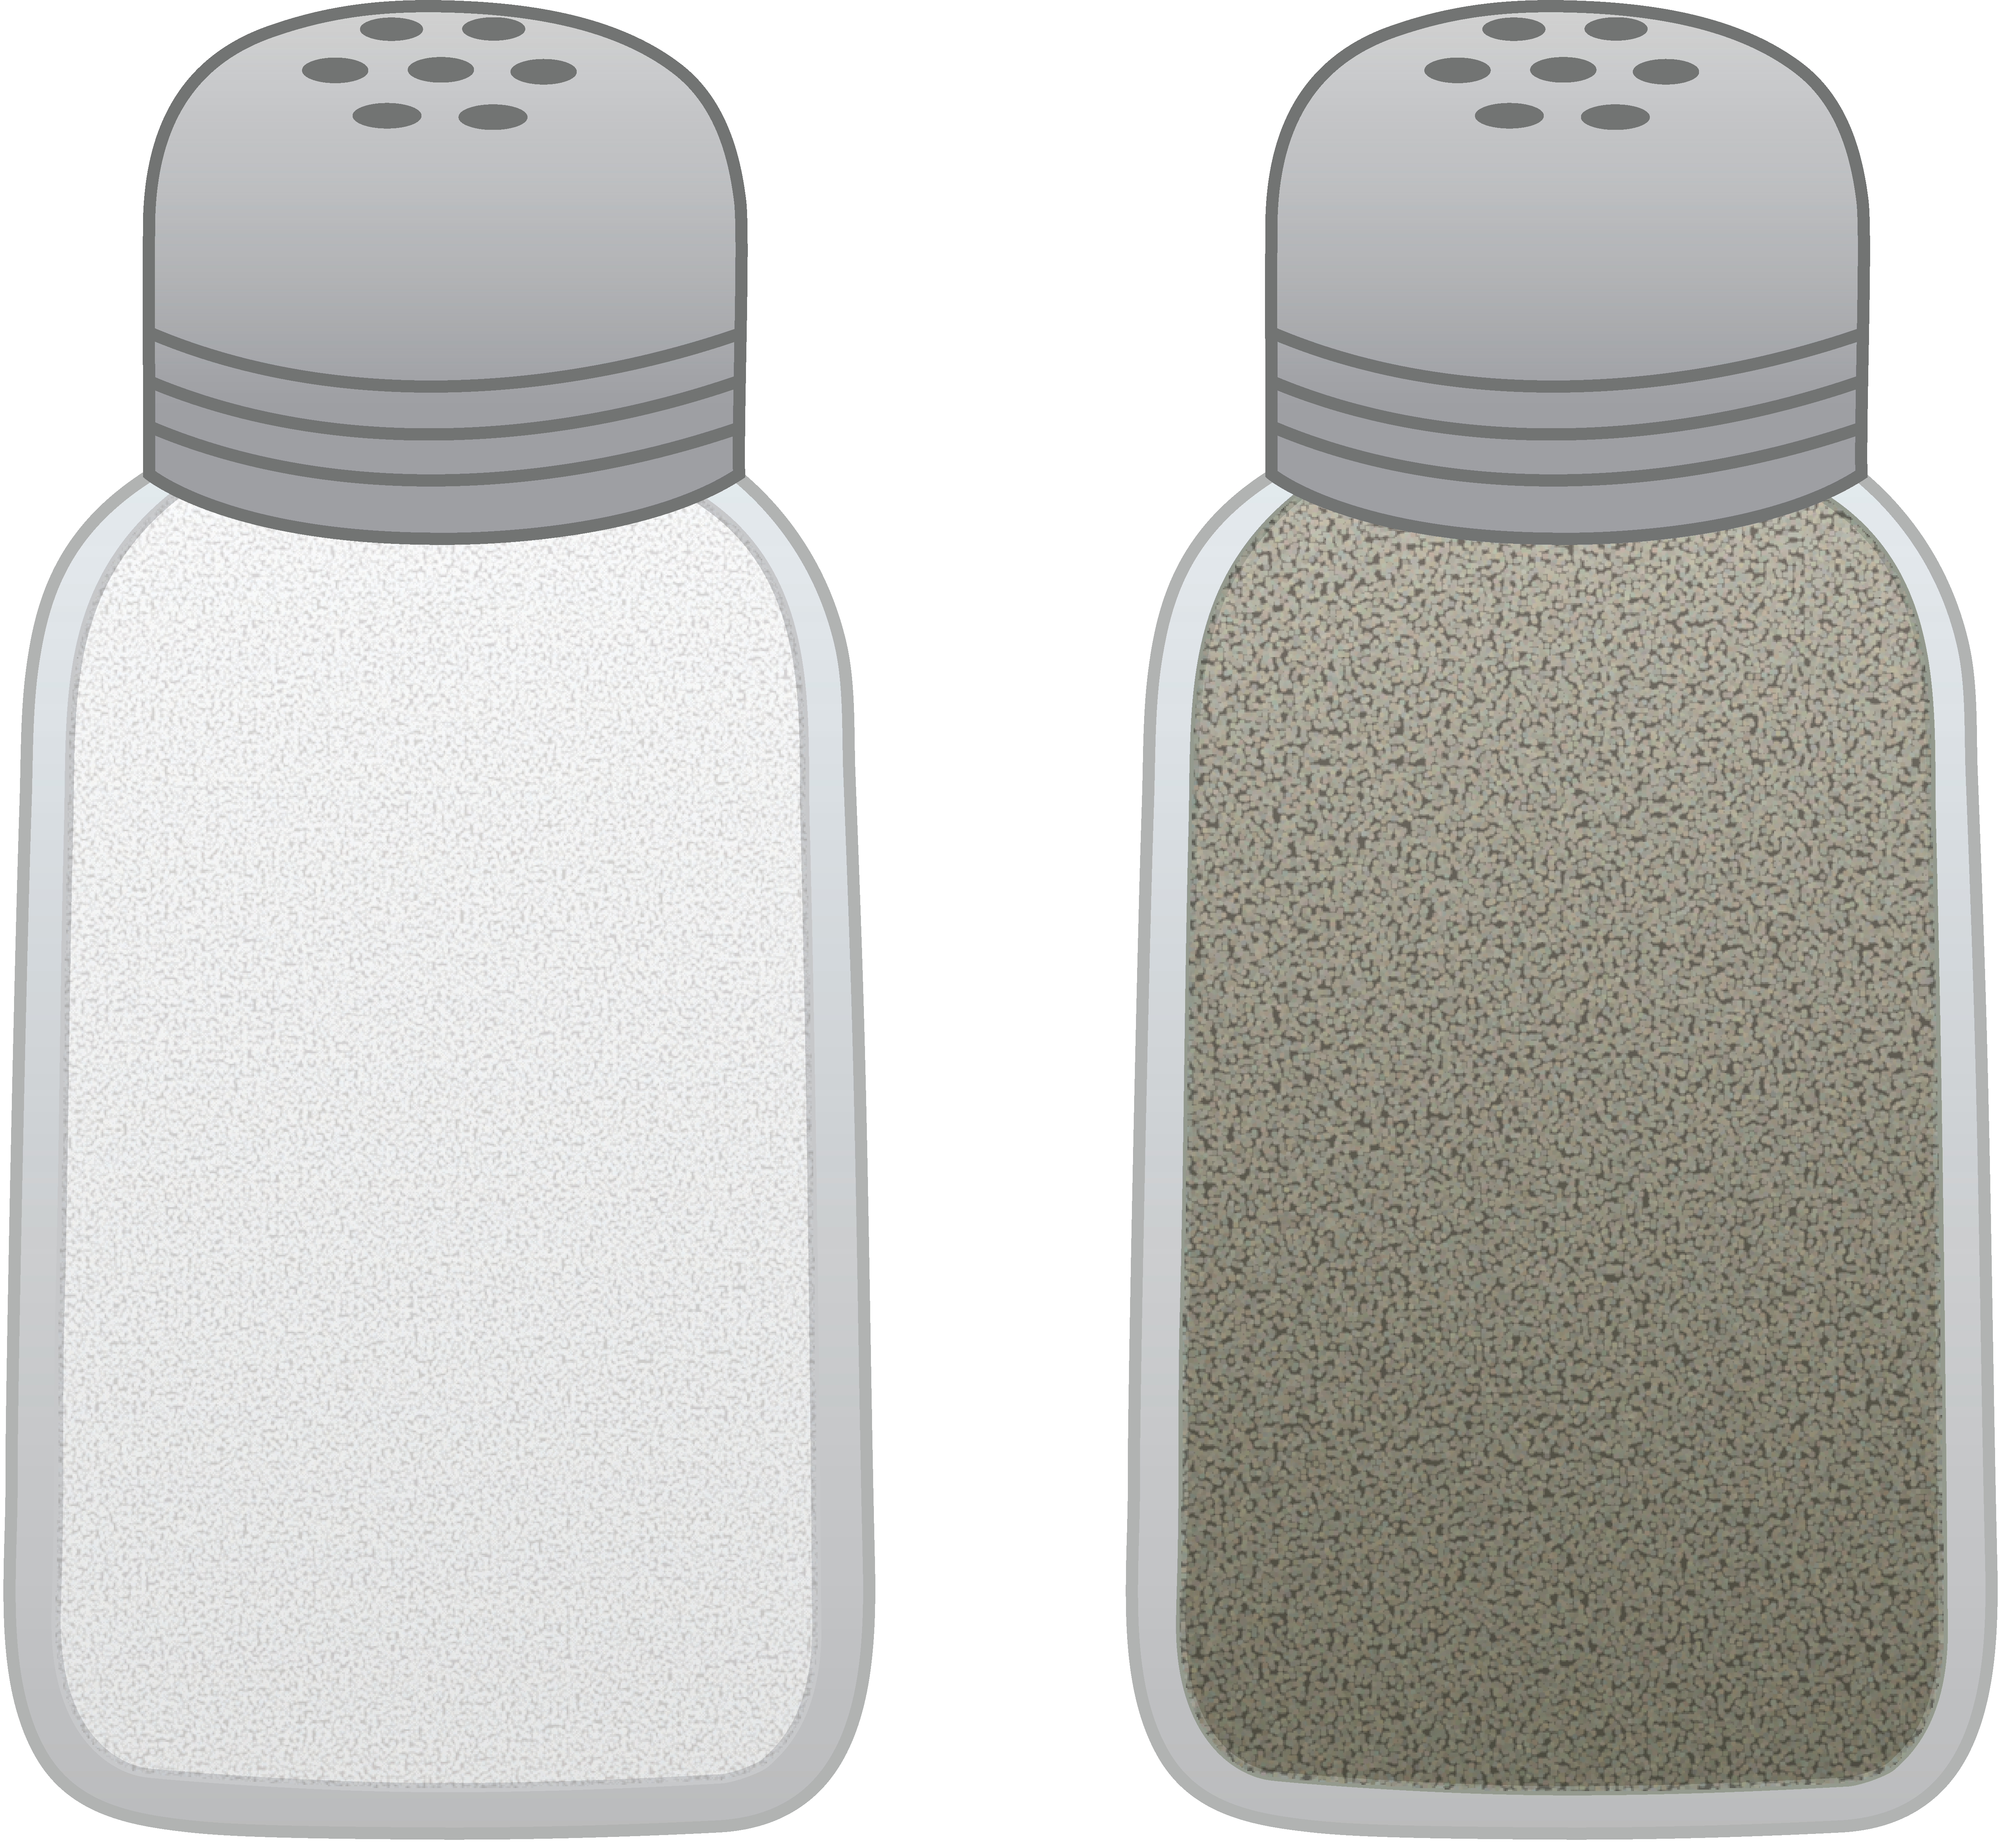 5413x4998 Salt And Pepper Shakers